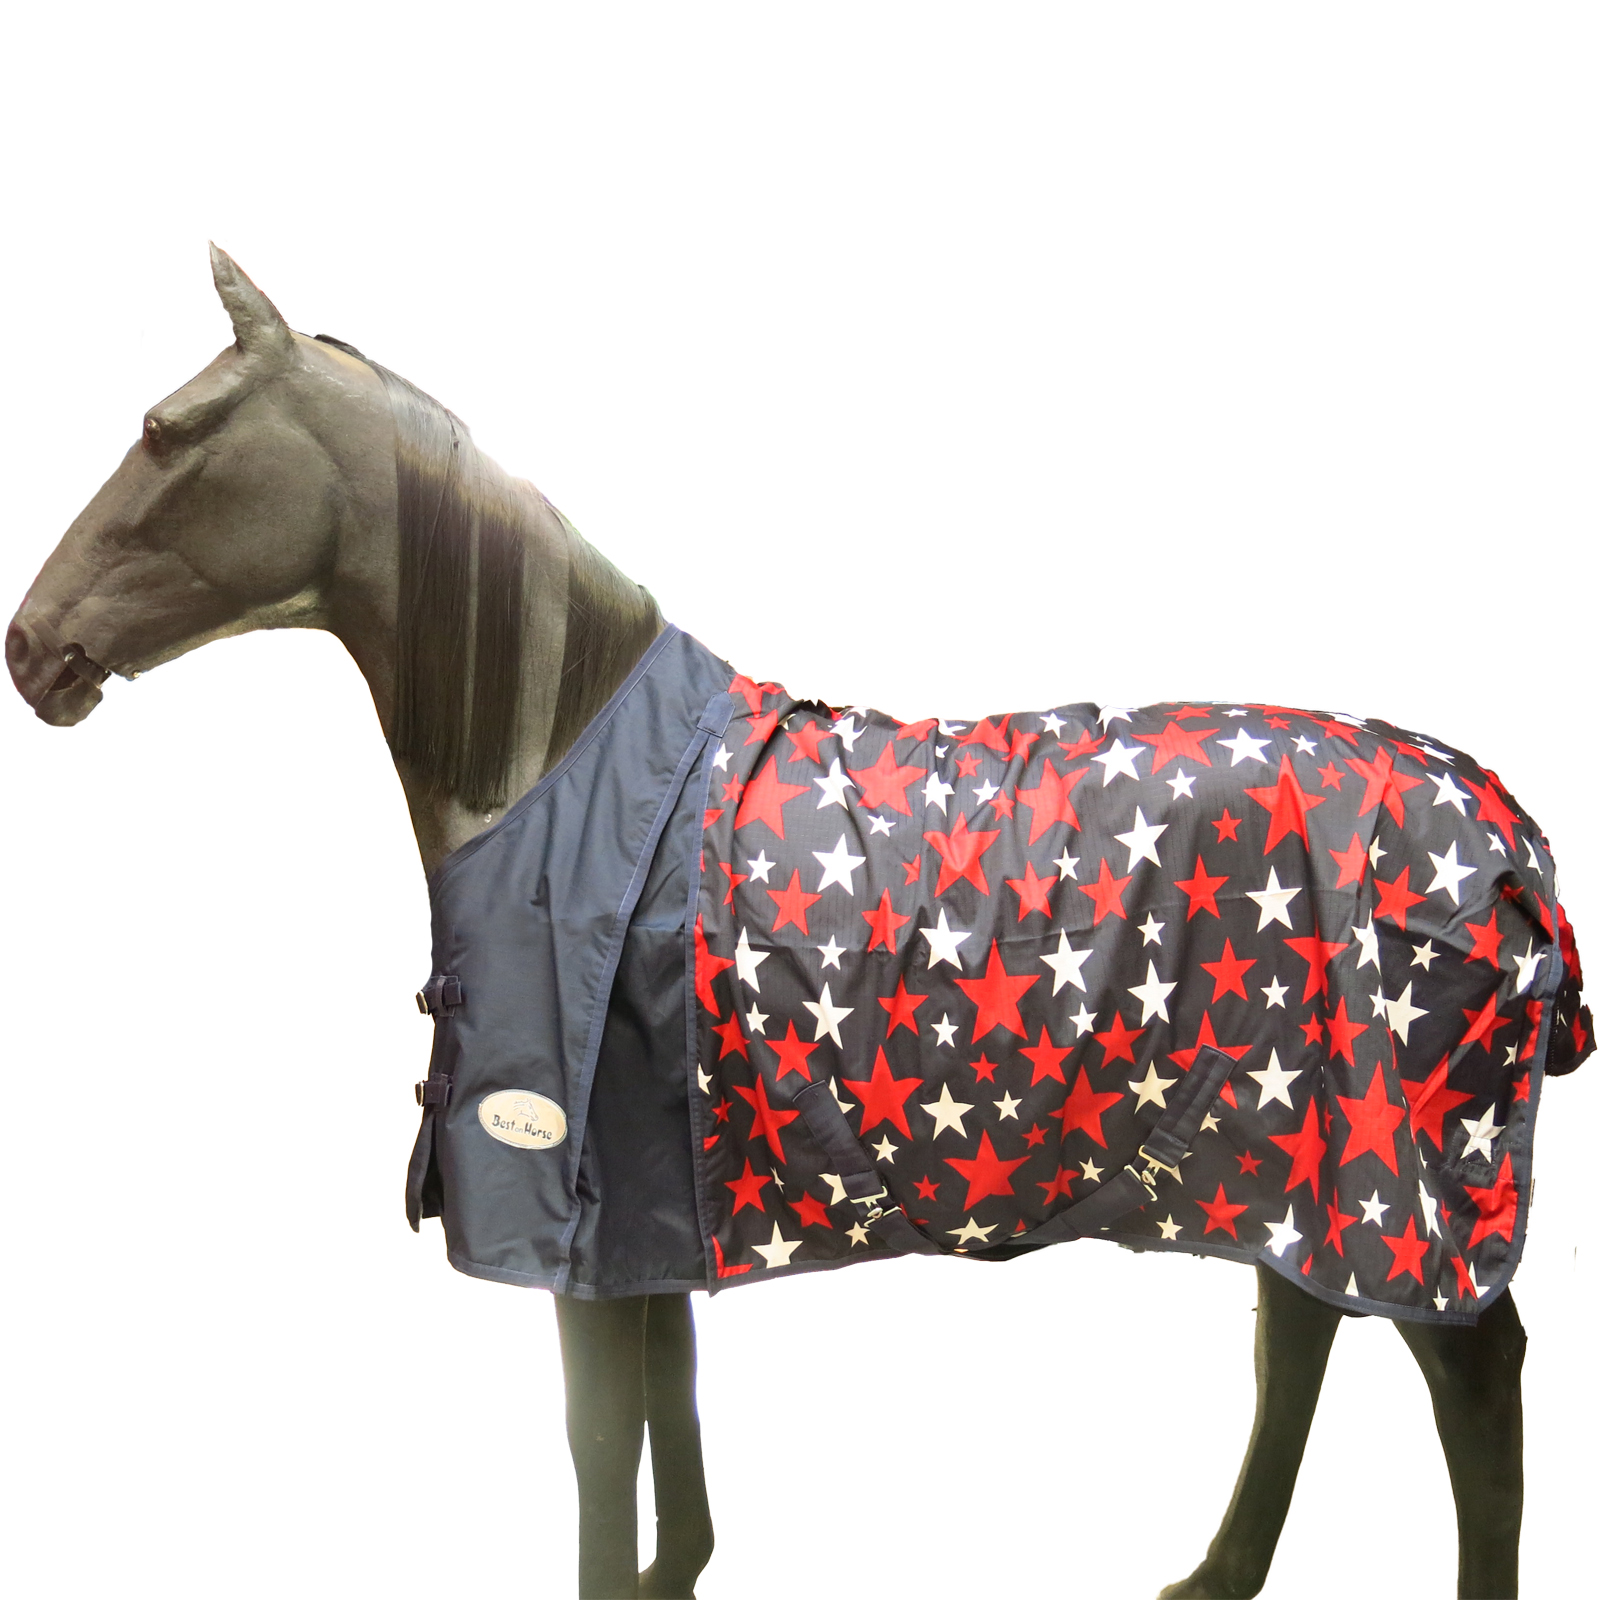 EQUESTRIAN RIDING RIPSTOP BREATHABLE WATERPROOF RAIN SHEET